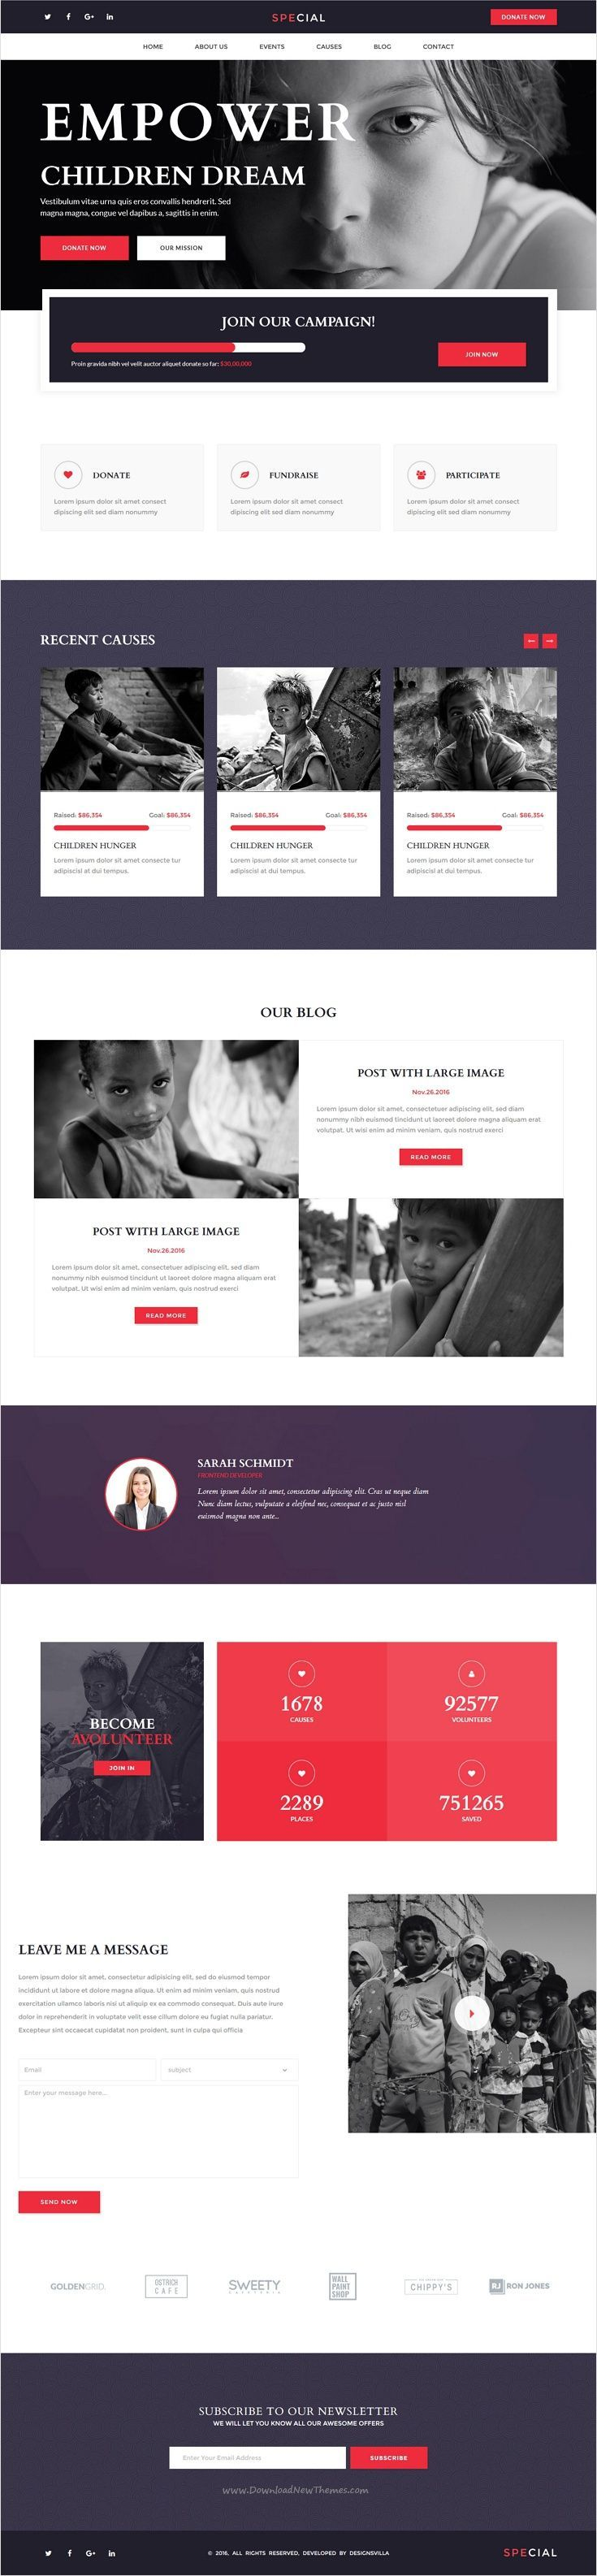 Special is a multipurpose #bootstrap landing page template #charity #help #webdev with HTML Page Builder, unique and elegant designs with 28+ stunning homepage layouts 500+ elements and amazing features download now➩ https://wrapbootstrap.com/theme/special-landing-page-pack-html-builder-WB0J8L557?ref=datasata Everybody with a business needs to have marketing platform that would provide a website, with lead capture up to 10K leads, sales funnels, play videos, and work on PC, Tablet and…